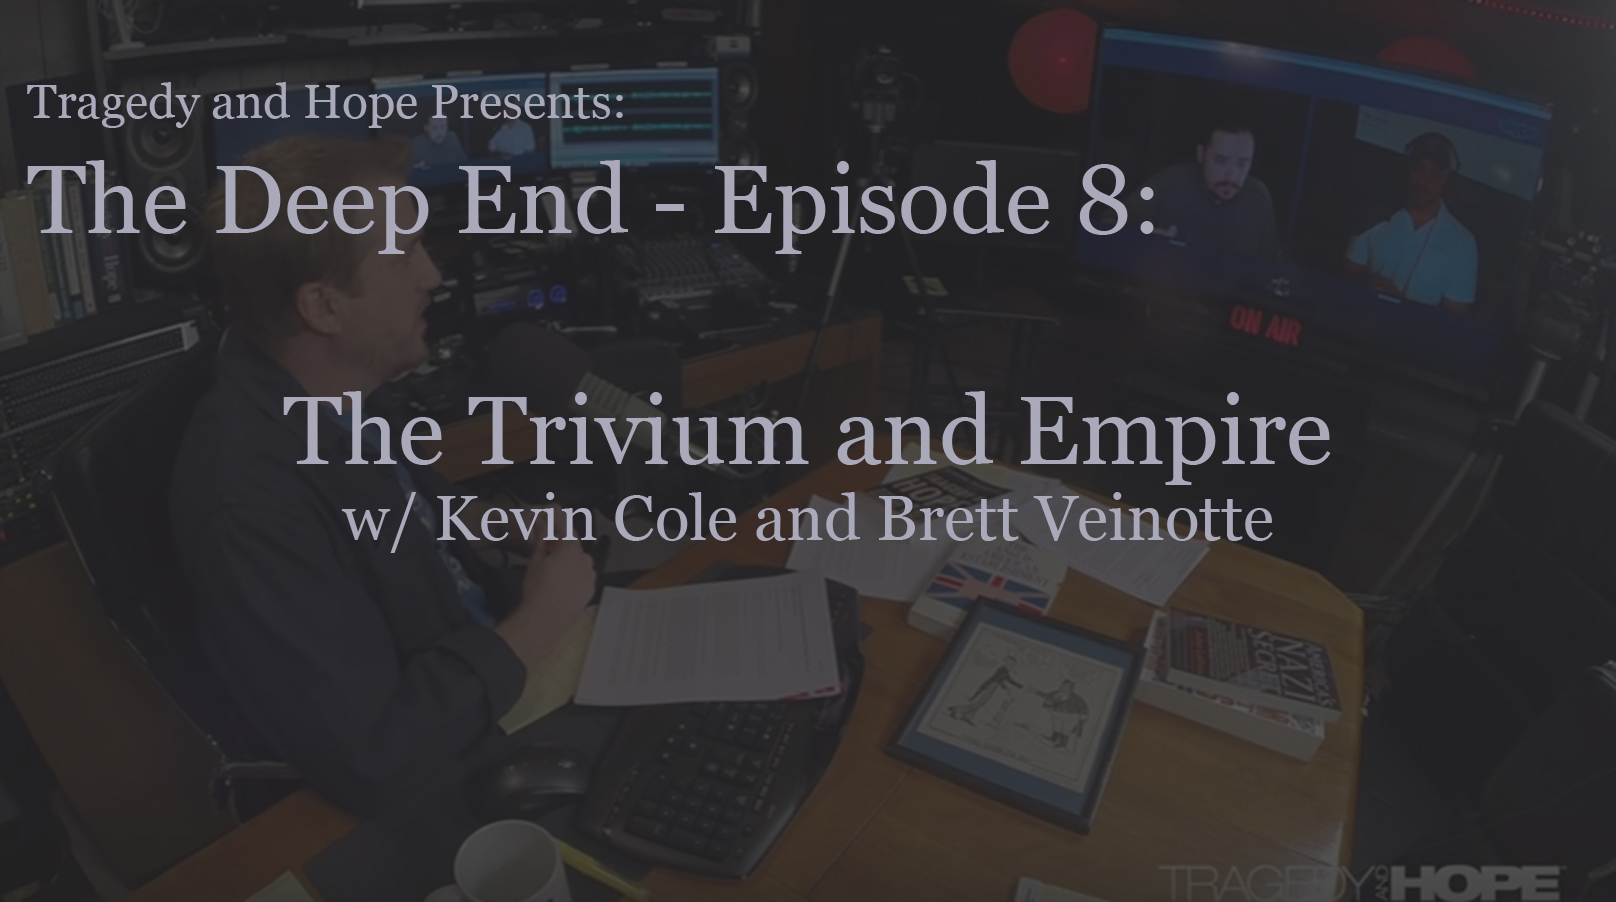 The Deep End - The Trivium and the Empire with kc and bv 001